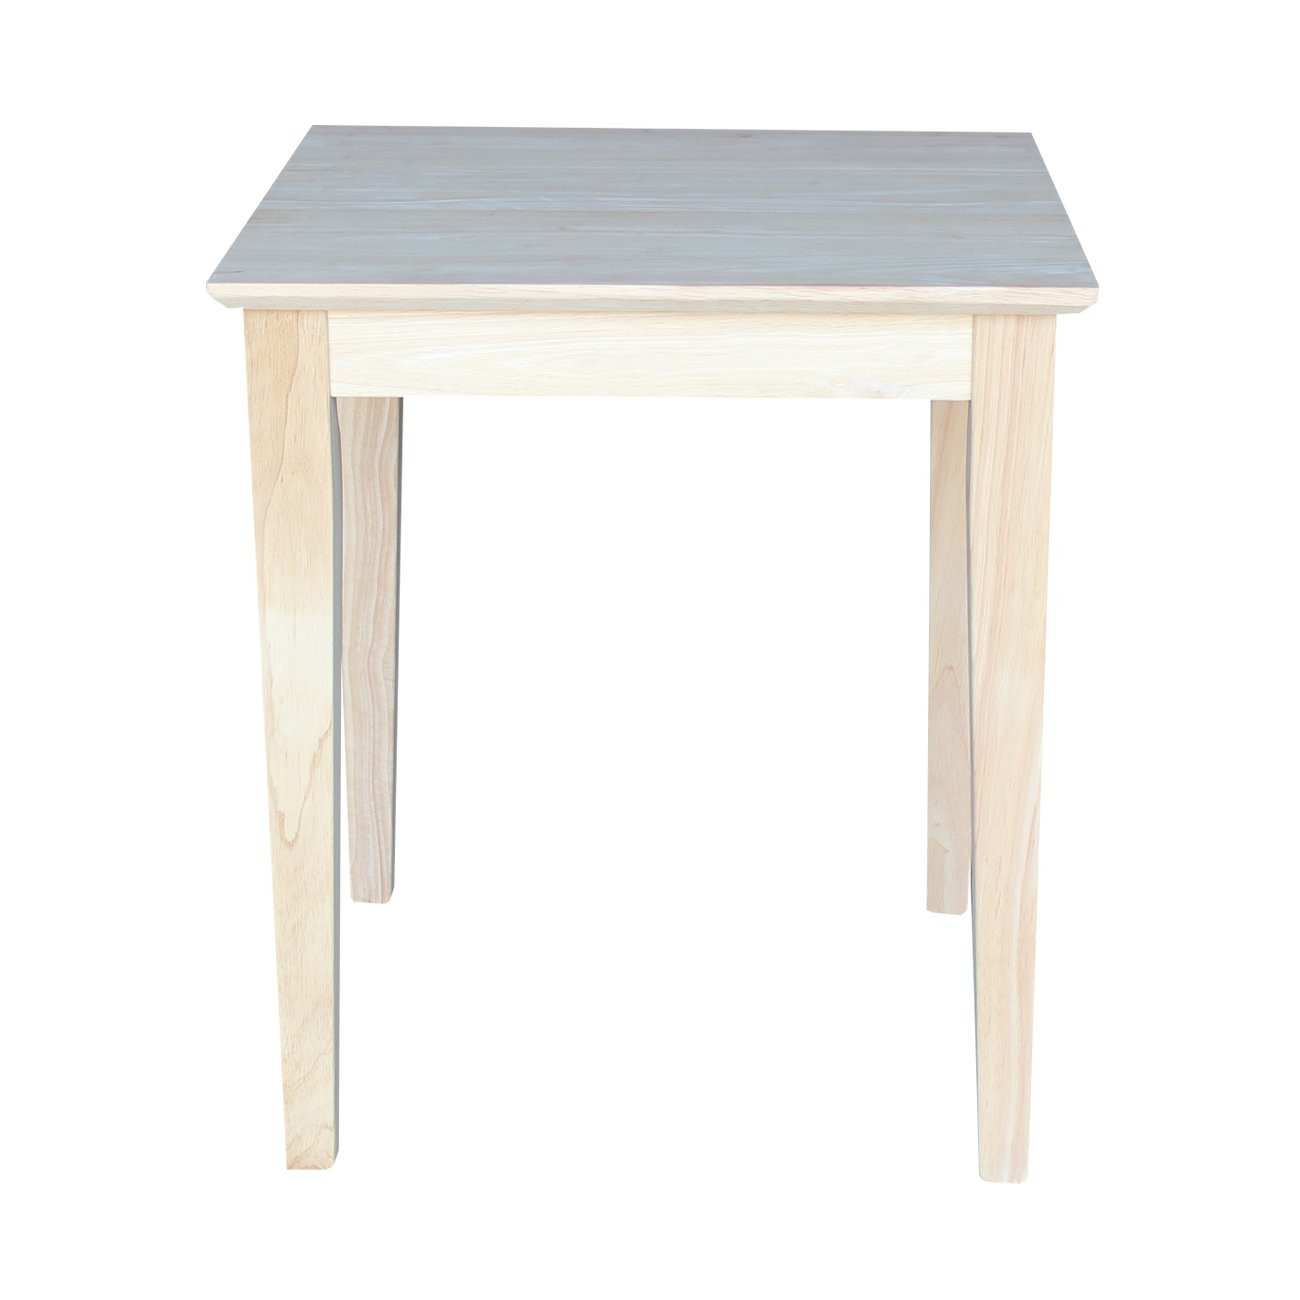 elegant unfinished wood side table for solid shaker cabinet end luxurious international concepts amp reviews accent ikea white bench round outdoor cocktail homemade rustic coffee